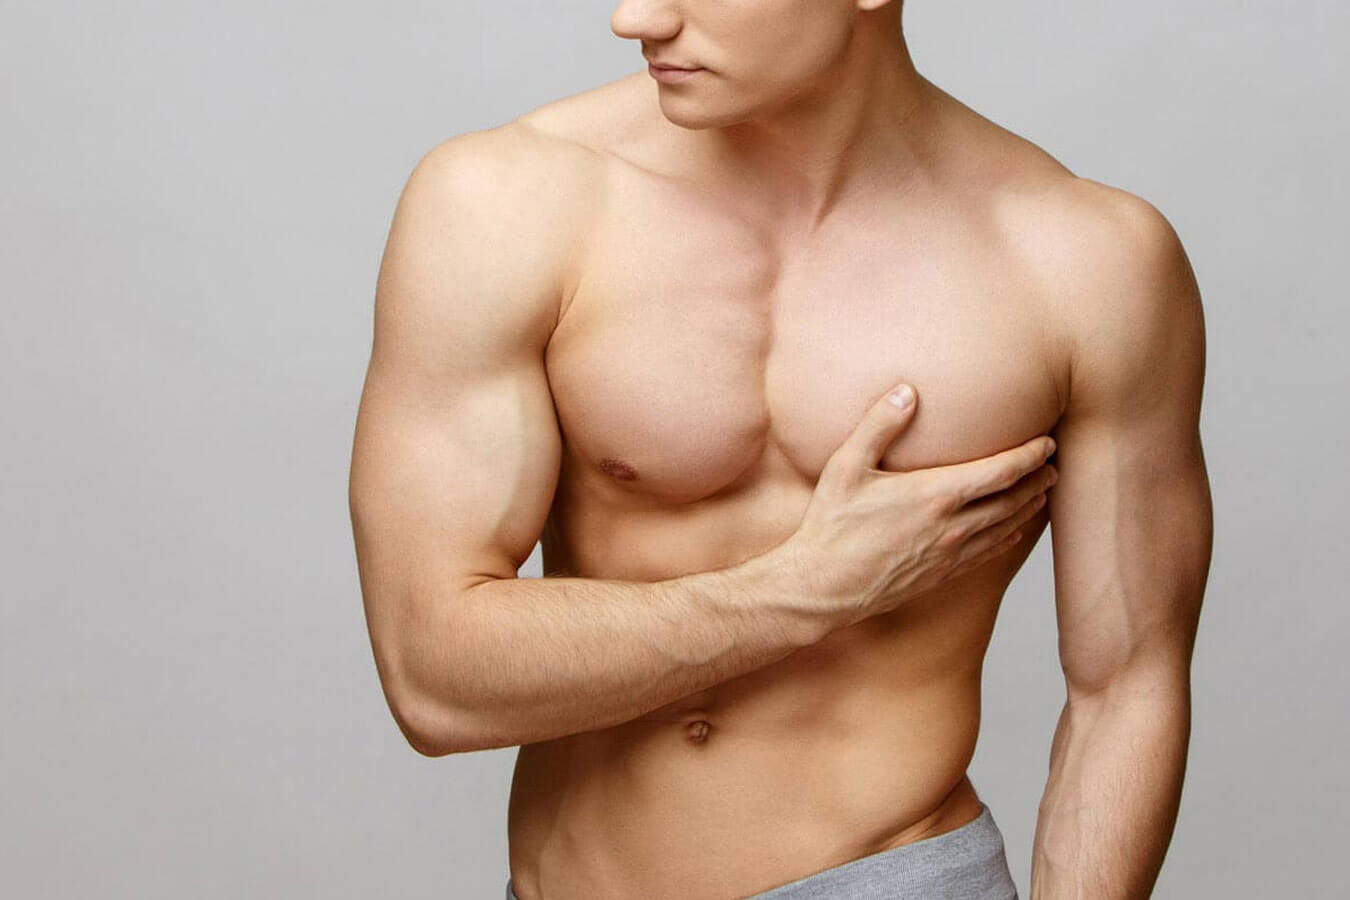 Gynecomastia Surgery in Miami